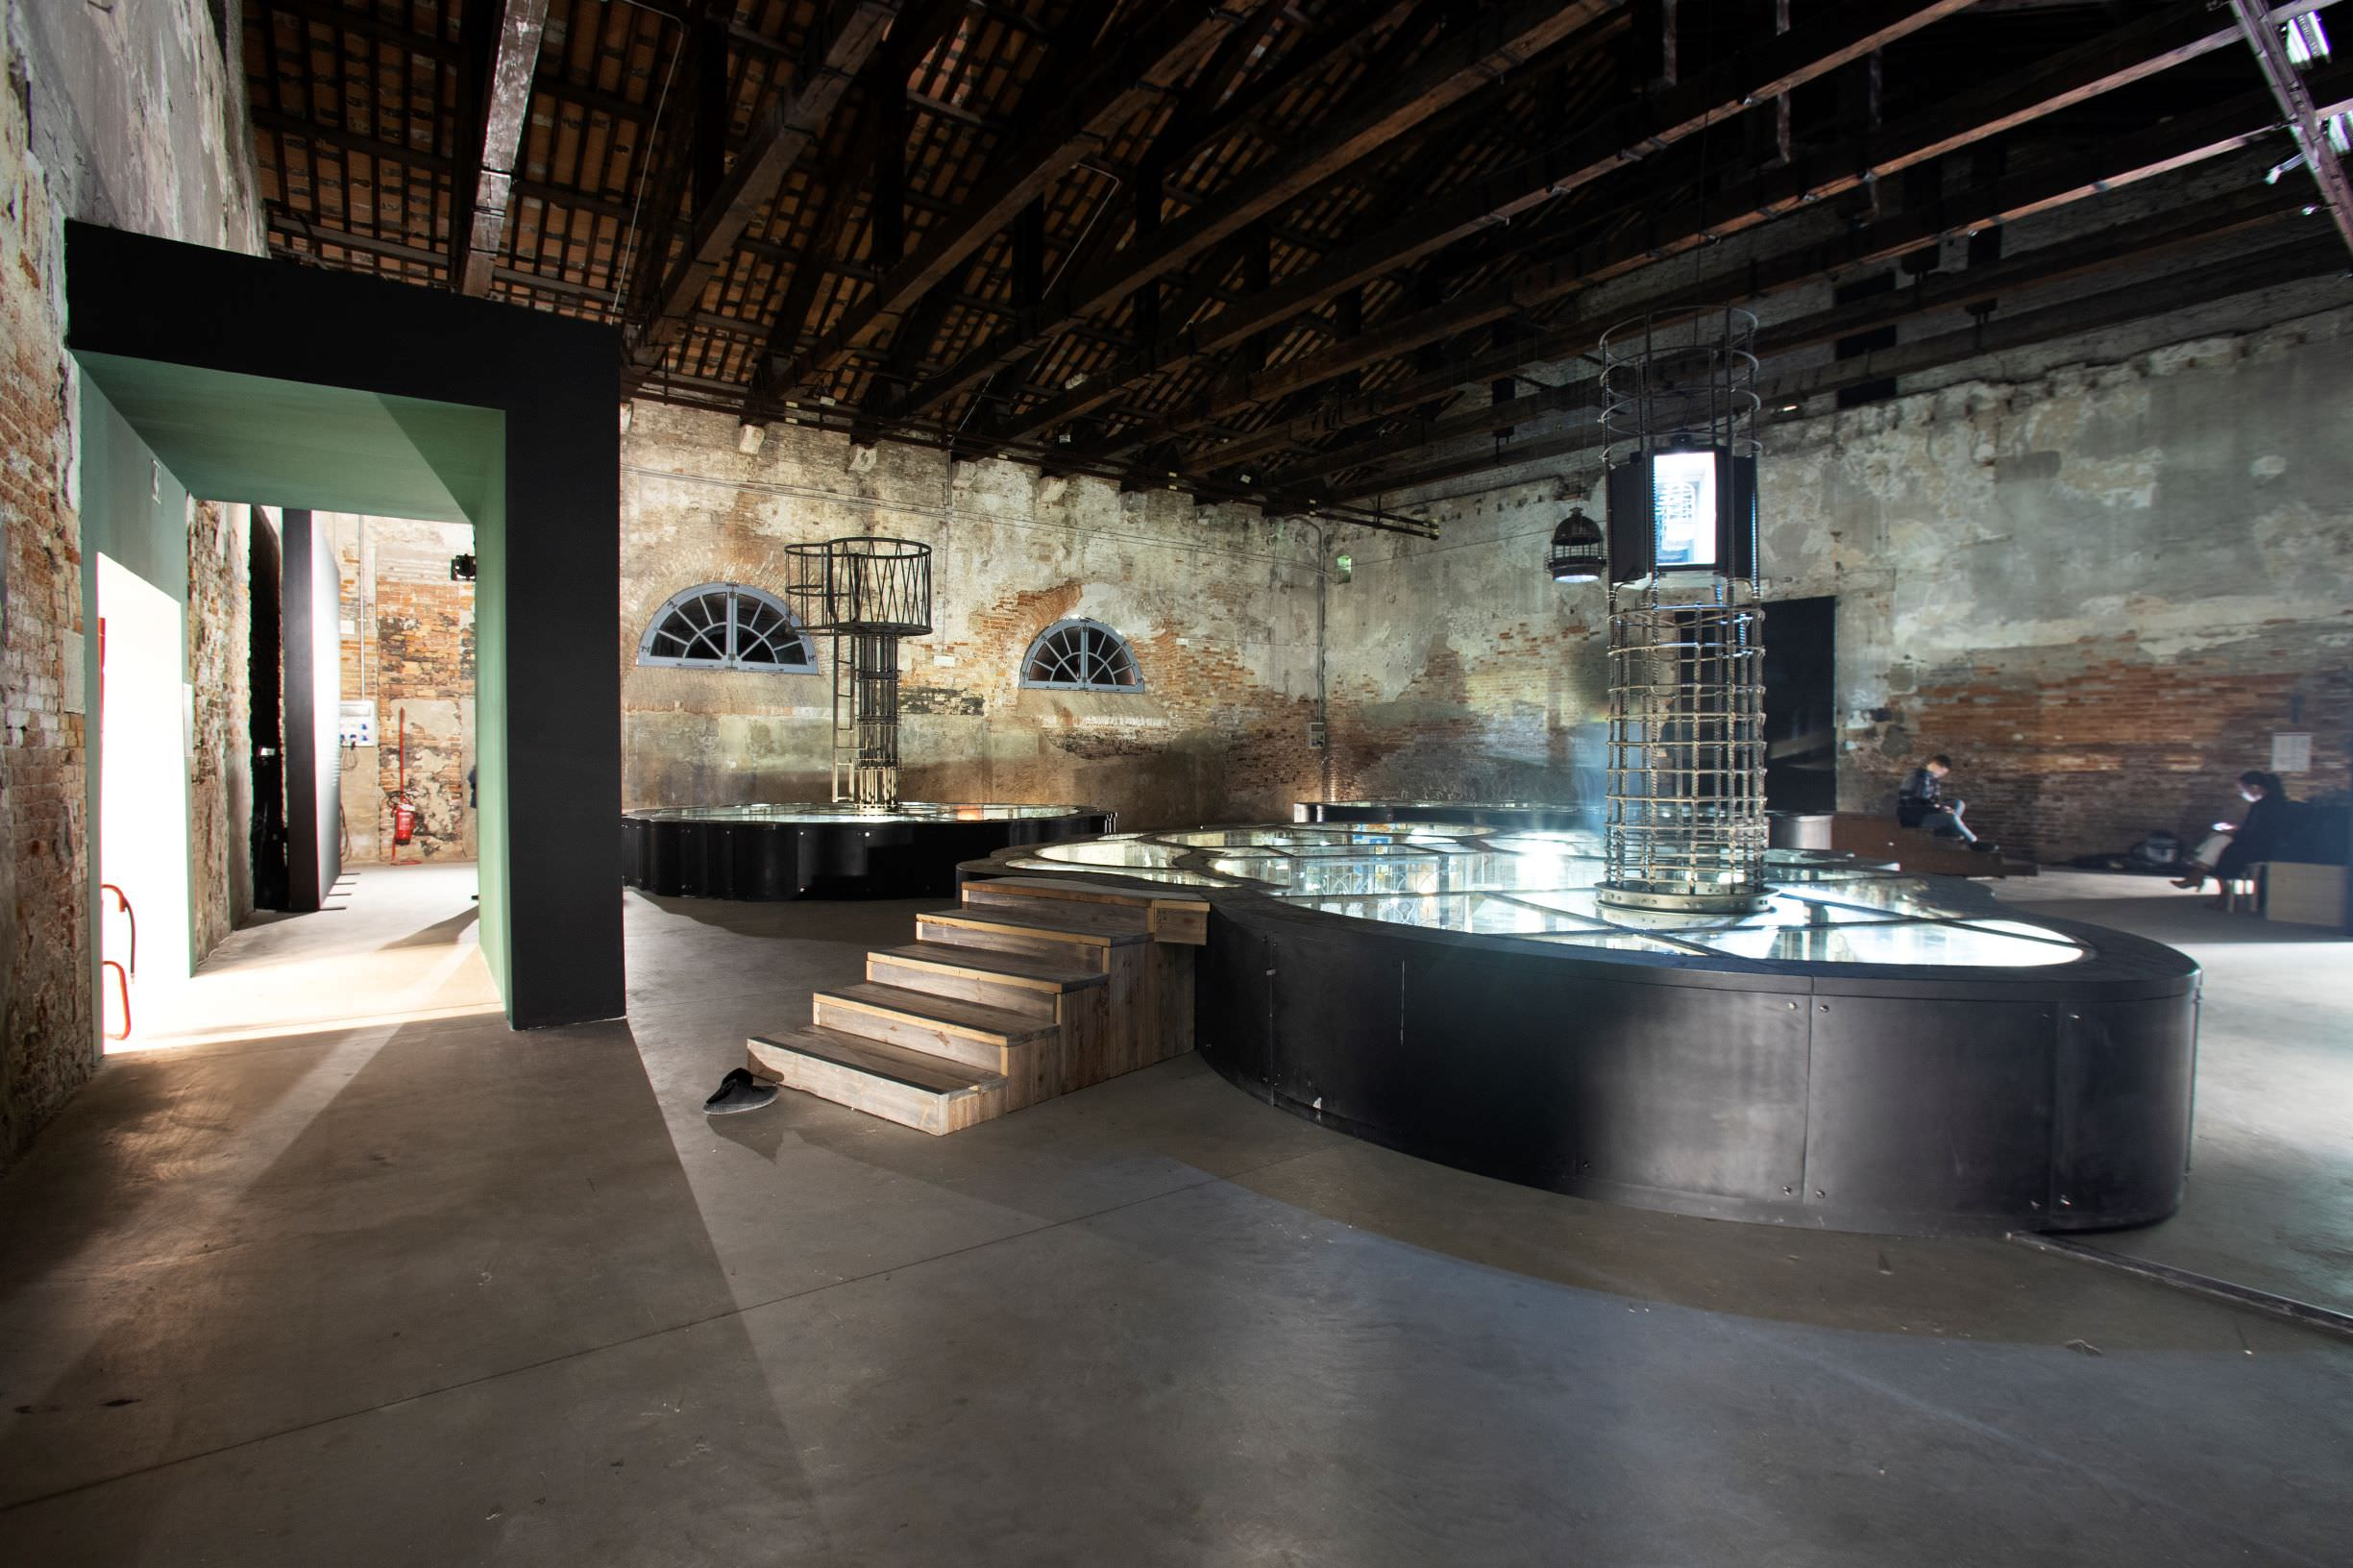 Pavilion of PHILIPPINES, Mark Justiniani, Island Weather. Photo by: Italo Rondinella. Courtesy: La Biennale di Venezia